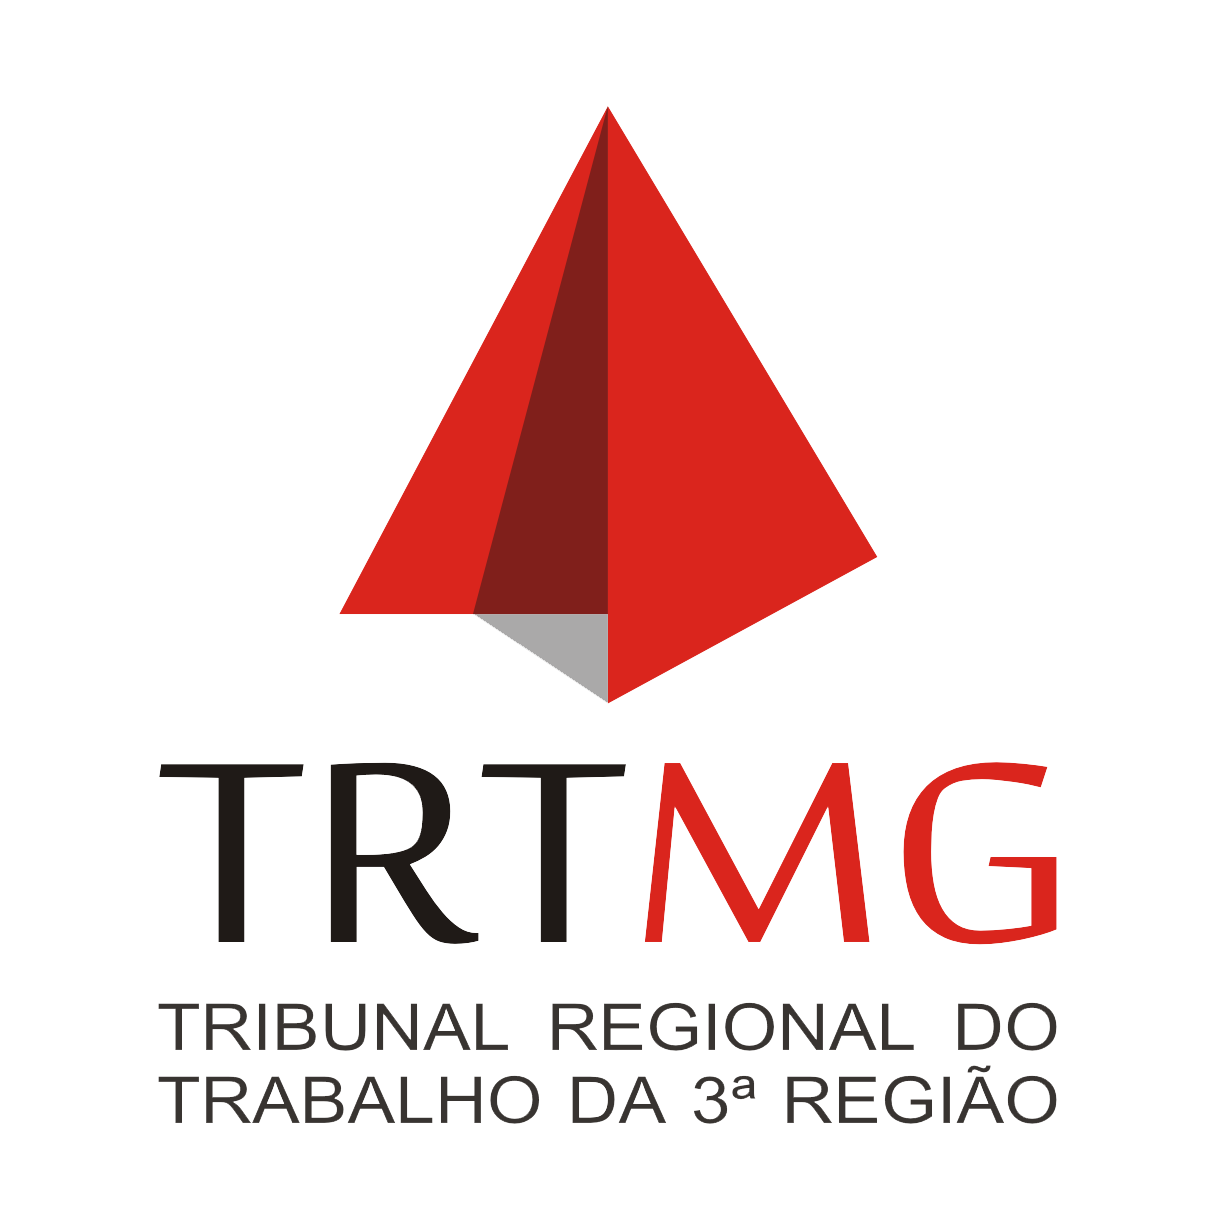 LEILÃO UNIFICADO TRT MG - 02/04/19 & 12/04/19